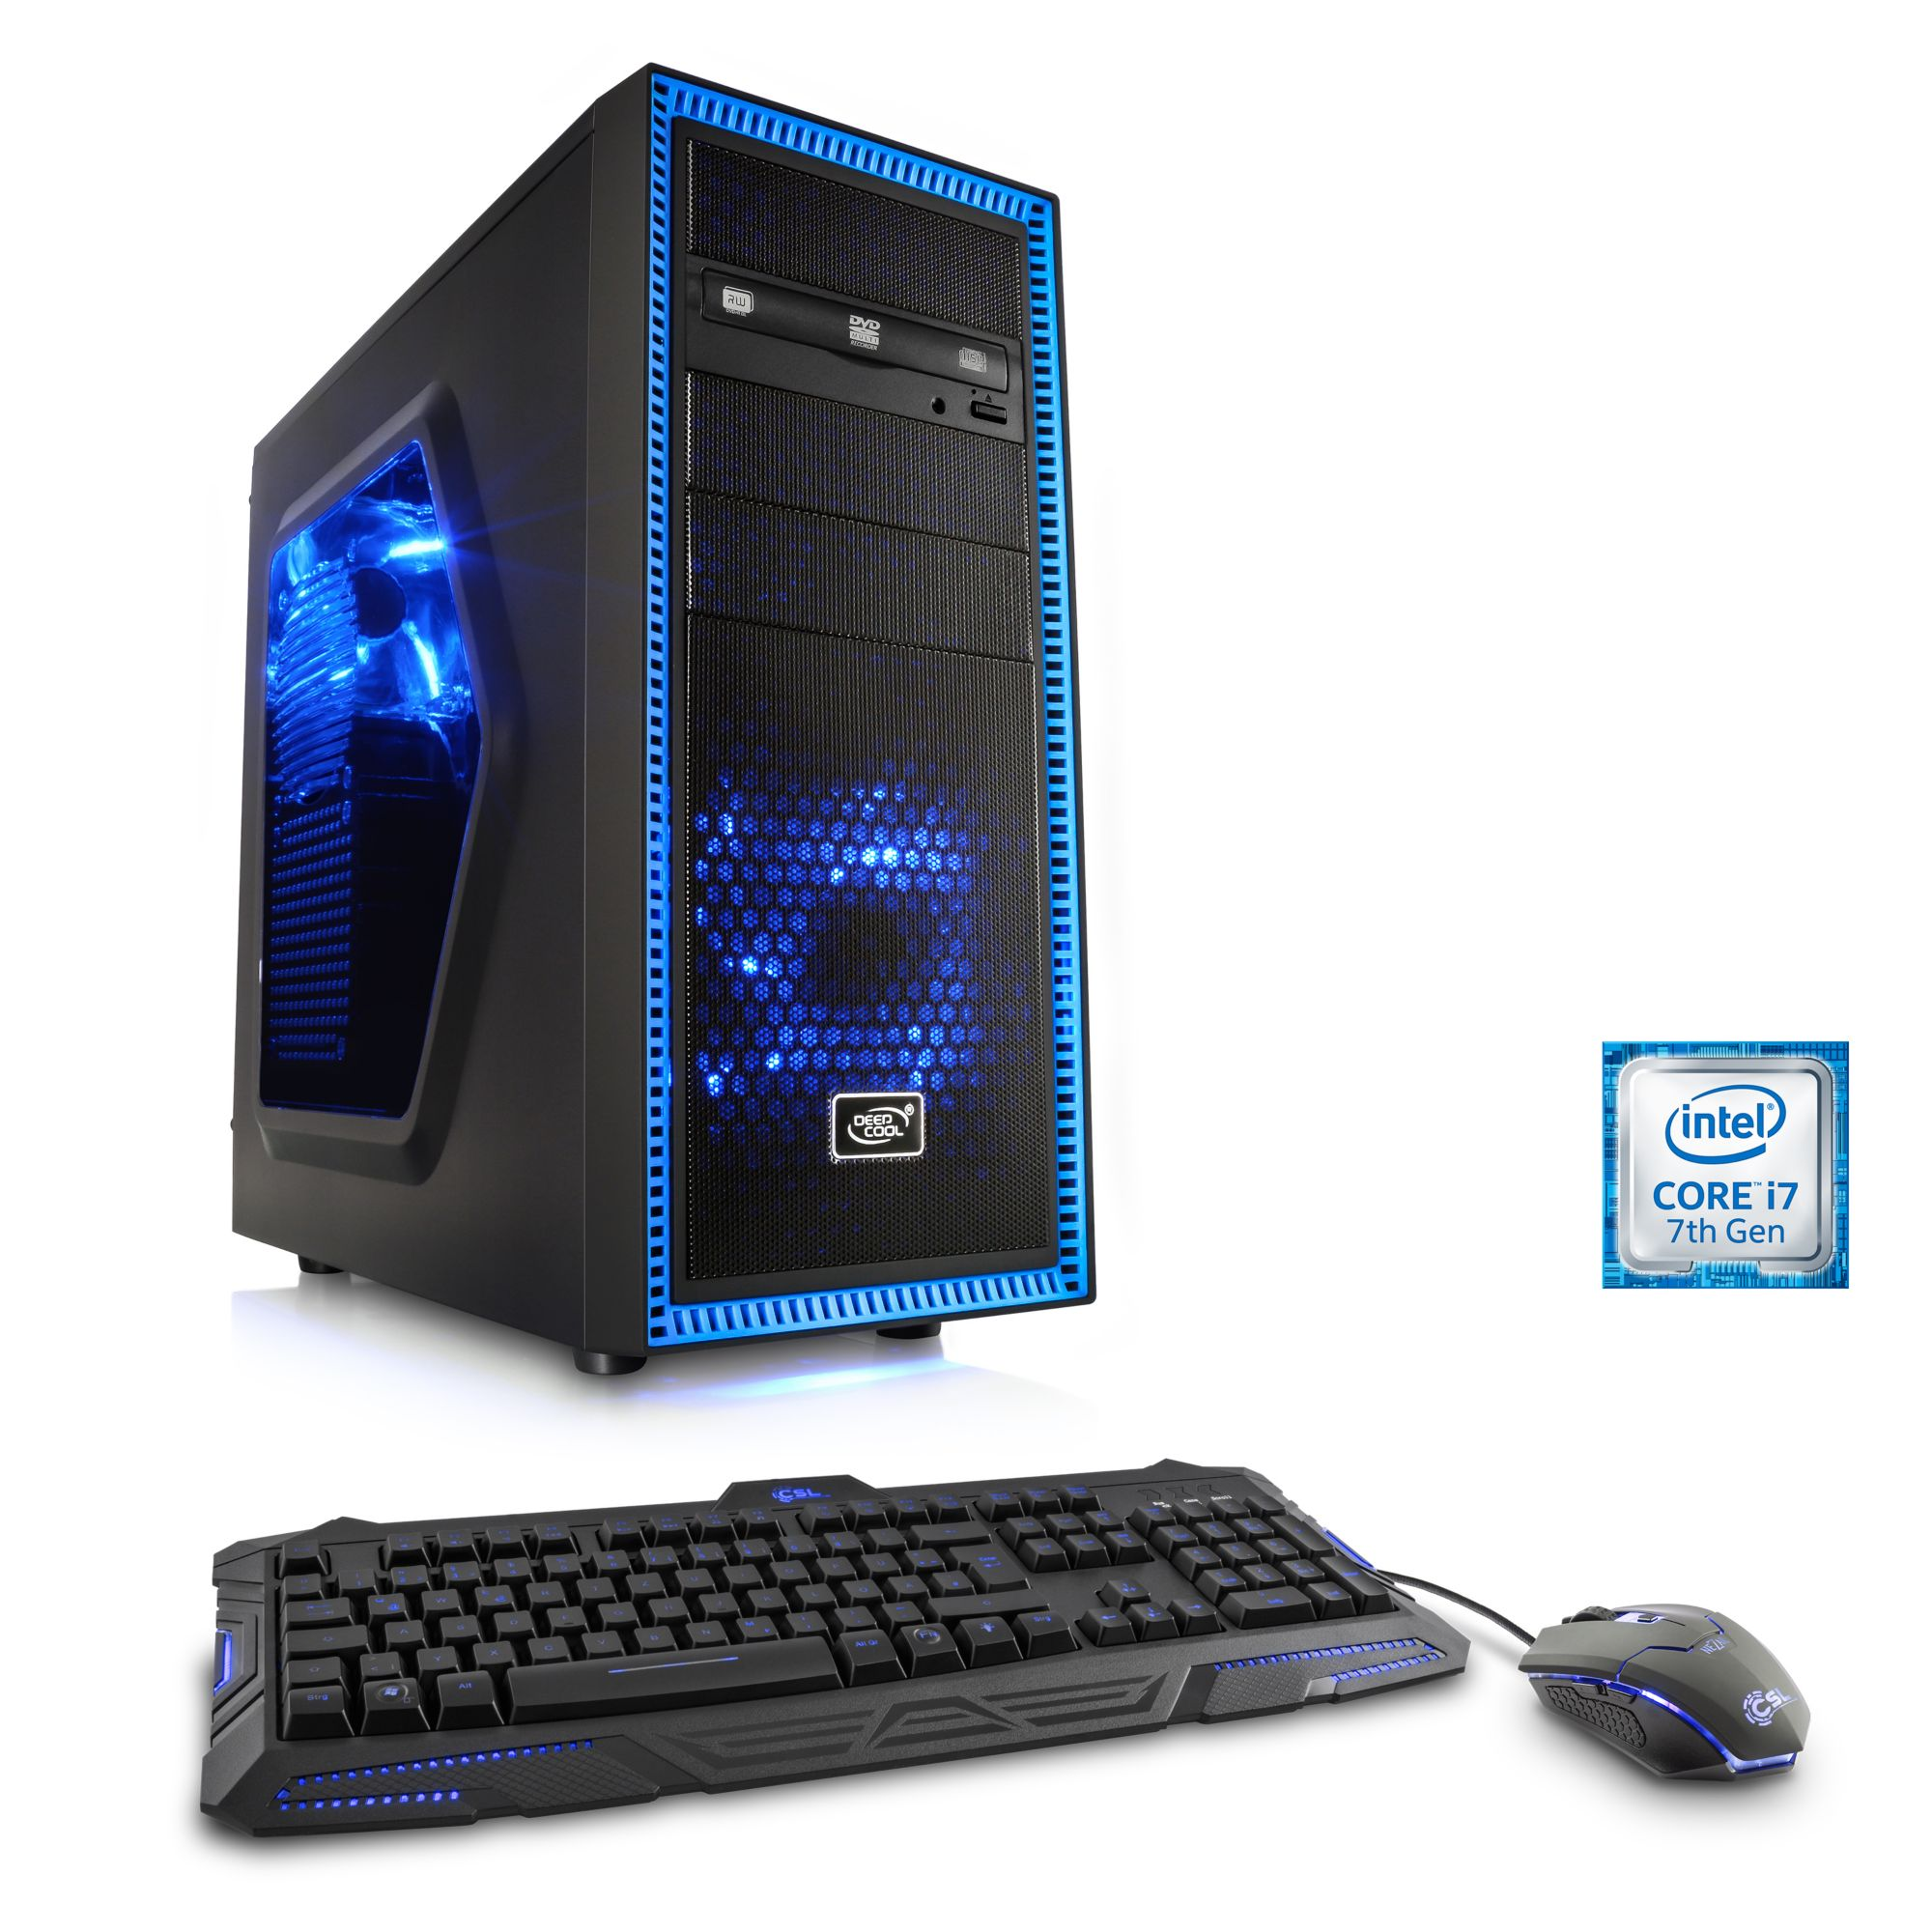 CSL  Extreme Gaming PC i7-7700K | GTX 1080 | 16GB DDR4 | 240GB SSD »Speed T7598 Windows 10 Home«